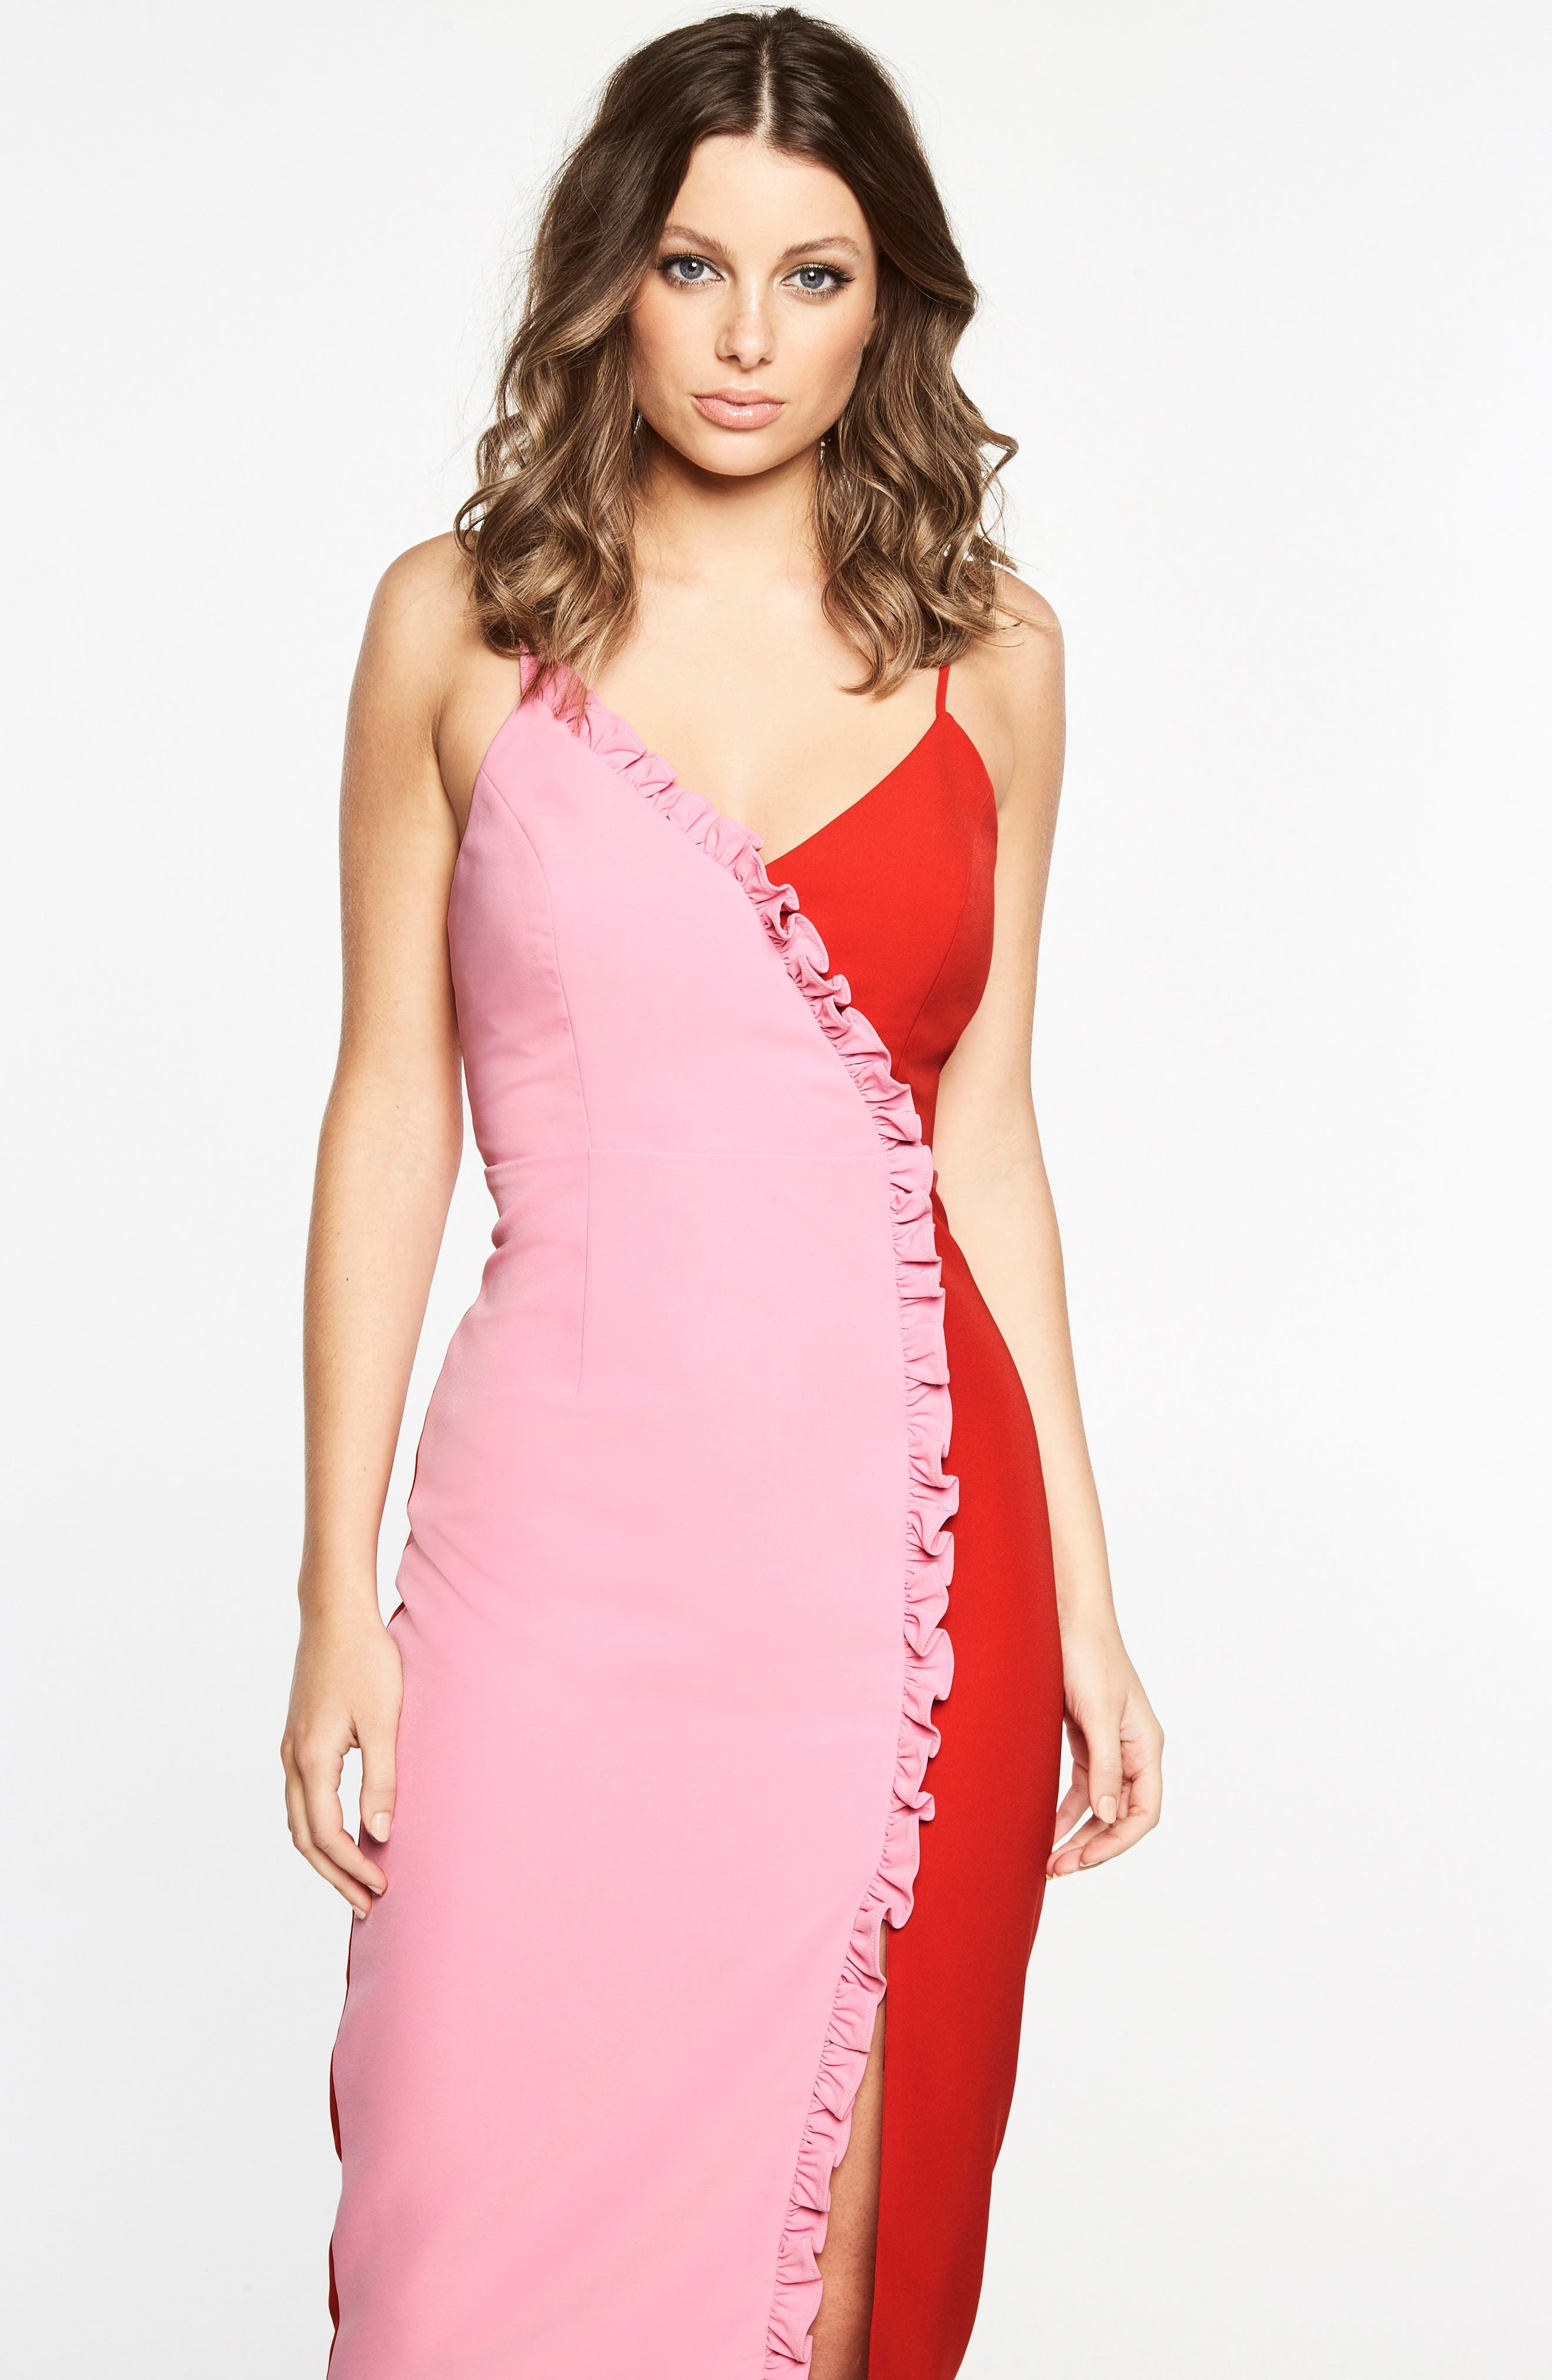 Sherbert Bomb Midi Dress,                             Alternate thumbnail 5, color,                             650